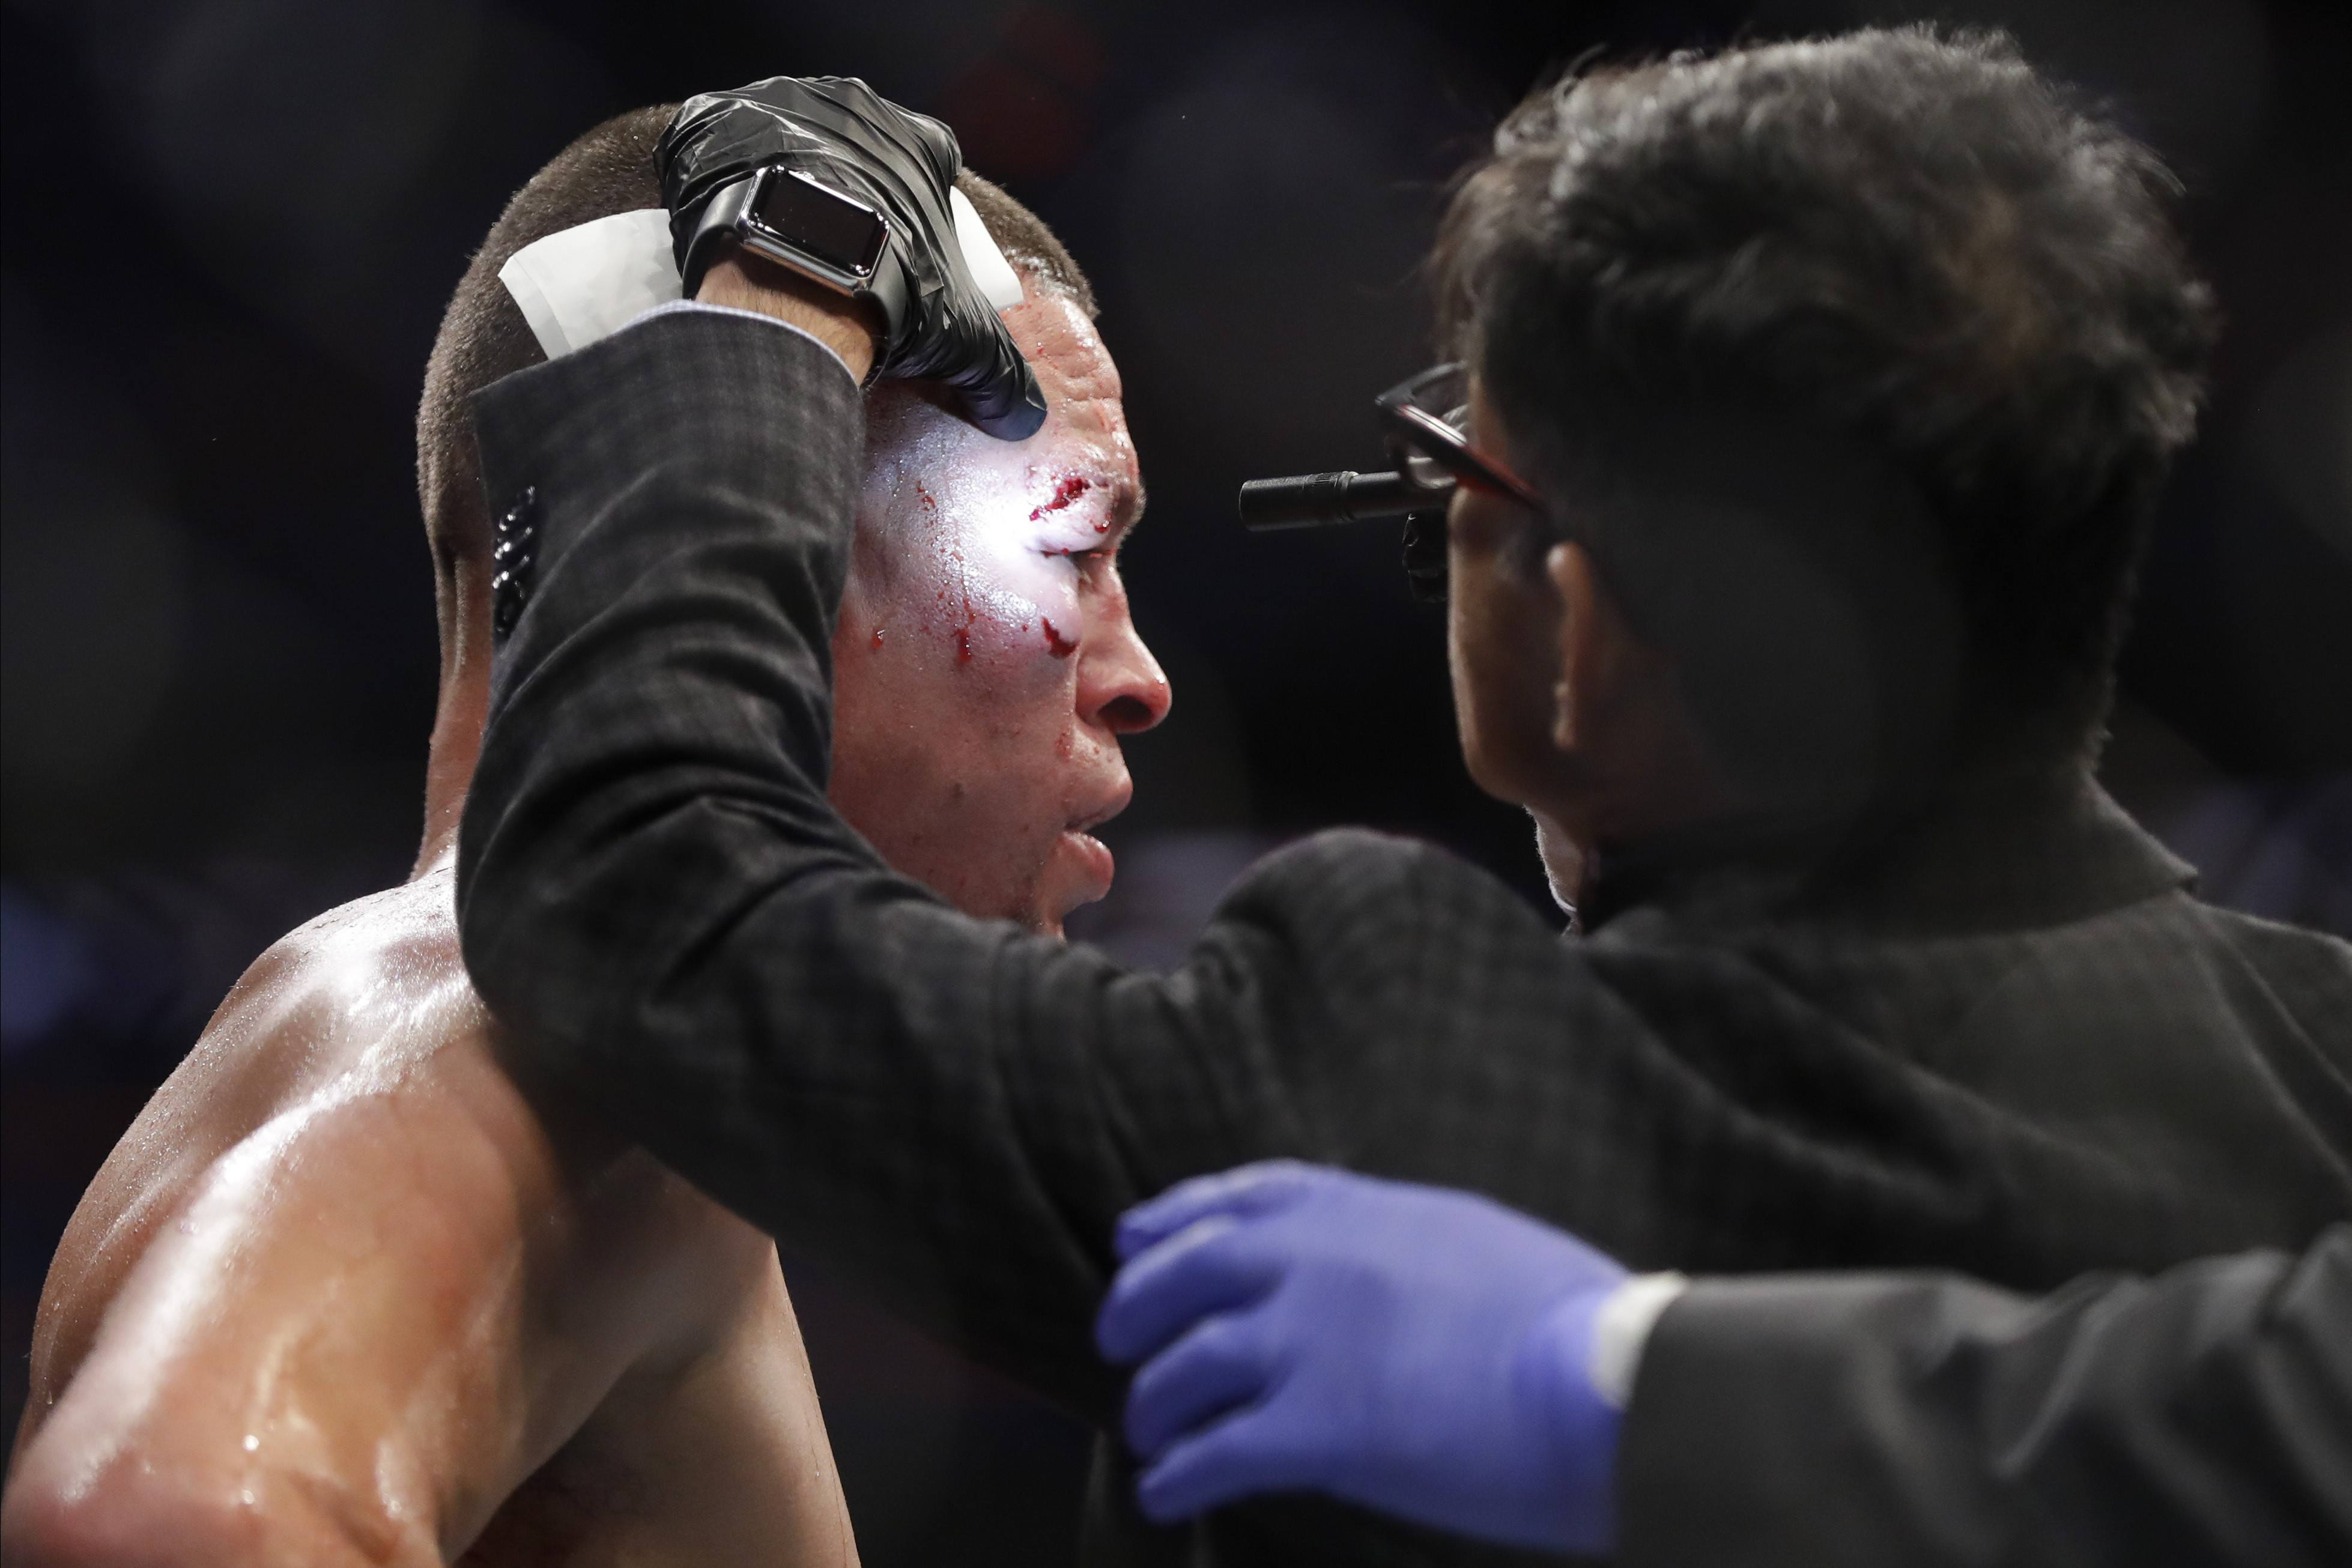 Combat Sports ringside physicians